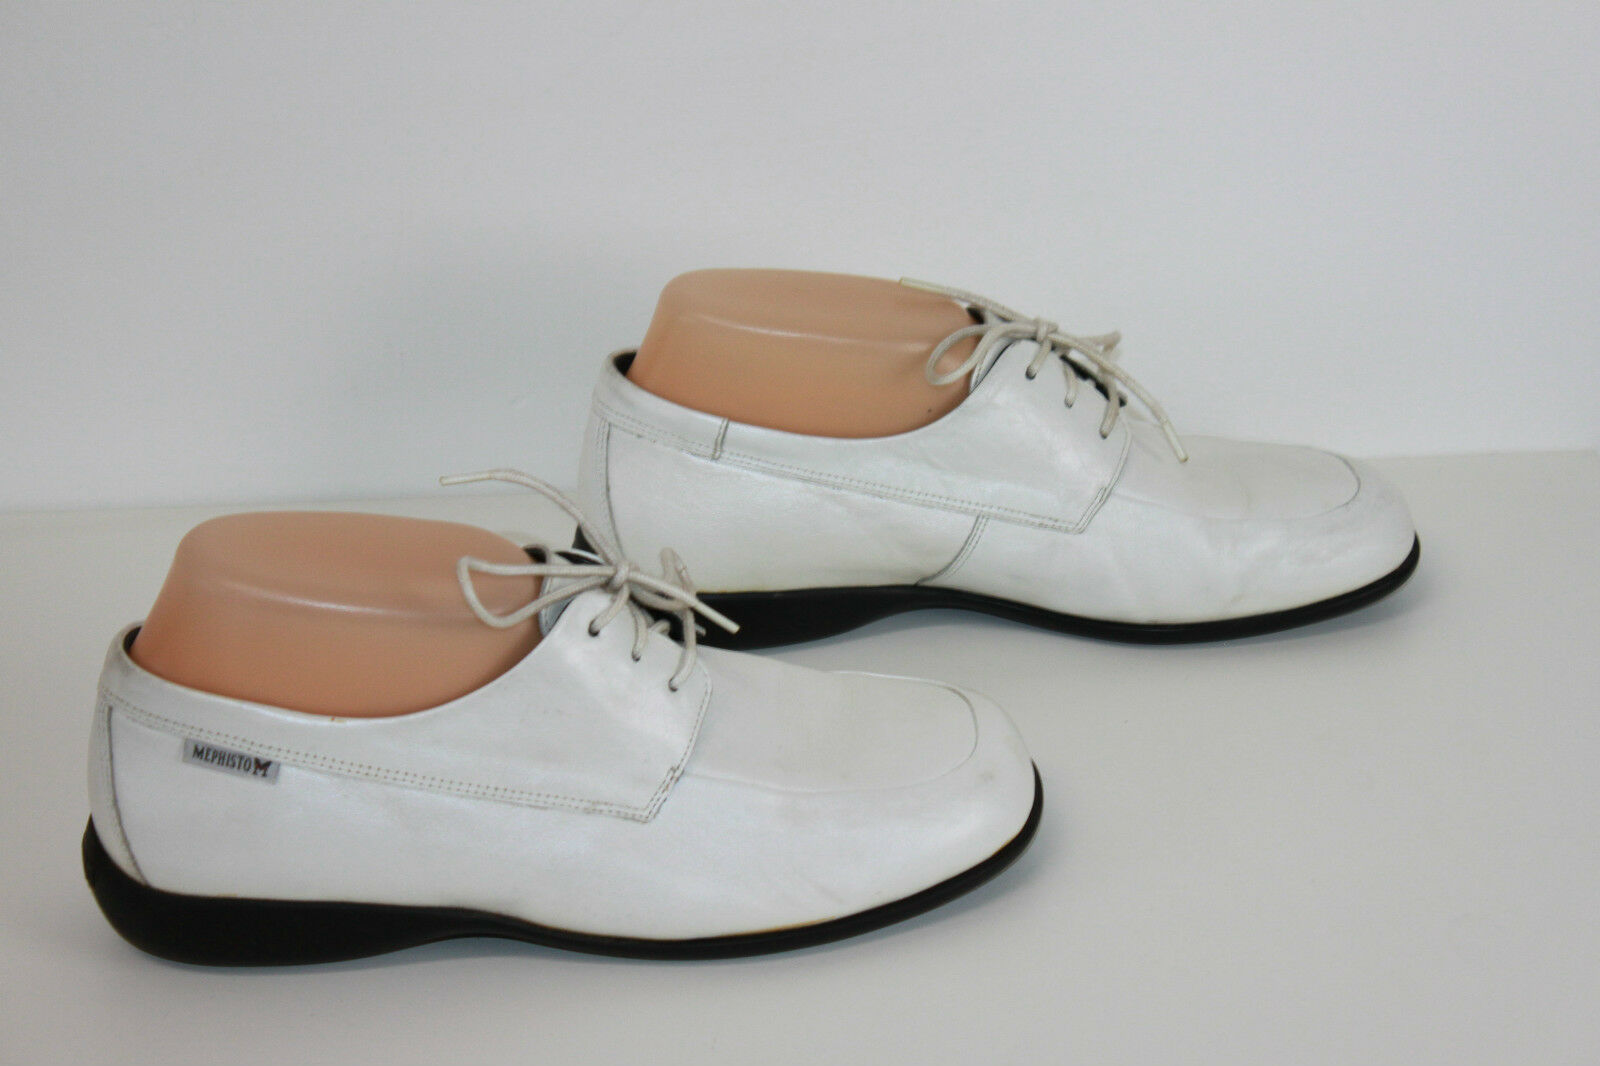 MEPHISTO Derby shoes White Leather Pearly T 6.5 US   t BE